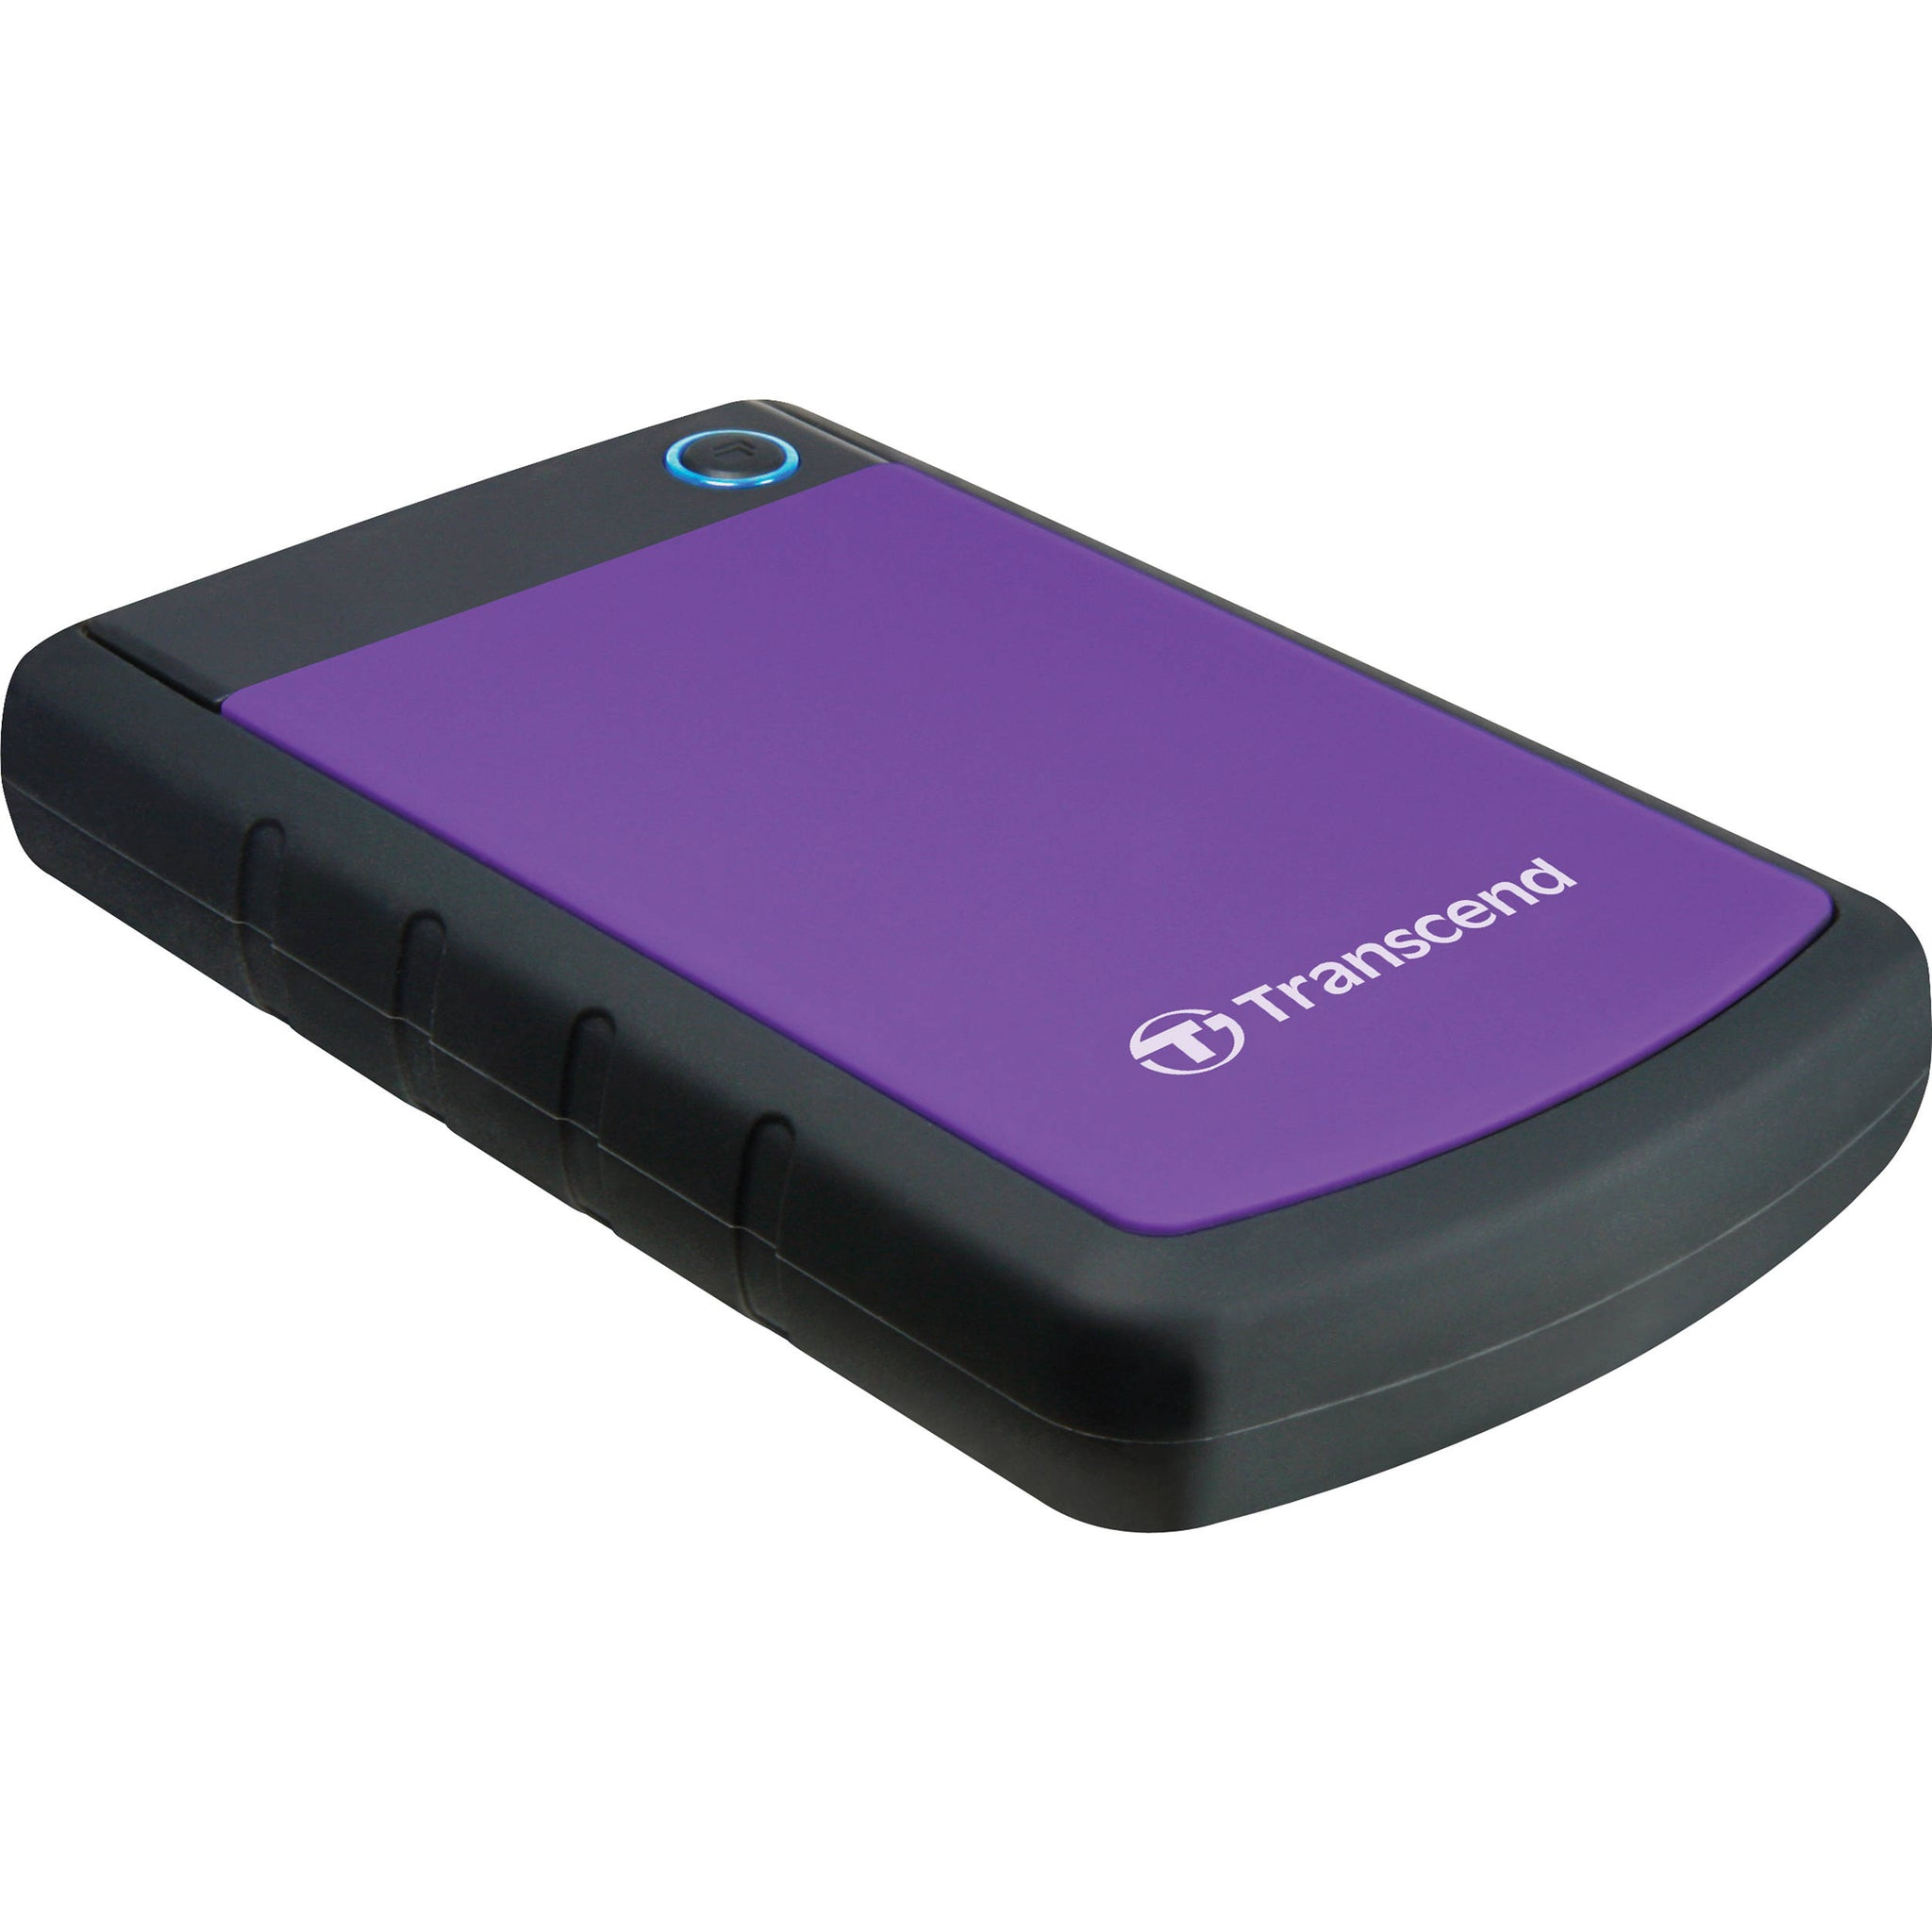 Transcend 2TB External Hard Drive StoreJet M3 Military Drop Tested USB 3.0 - Black,Purple